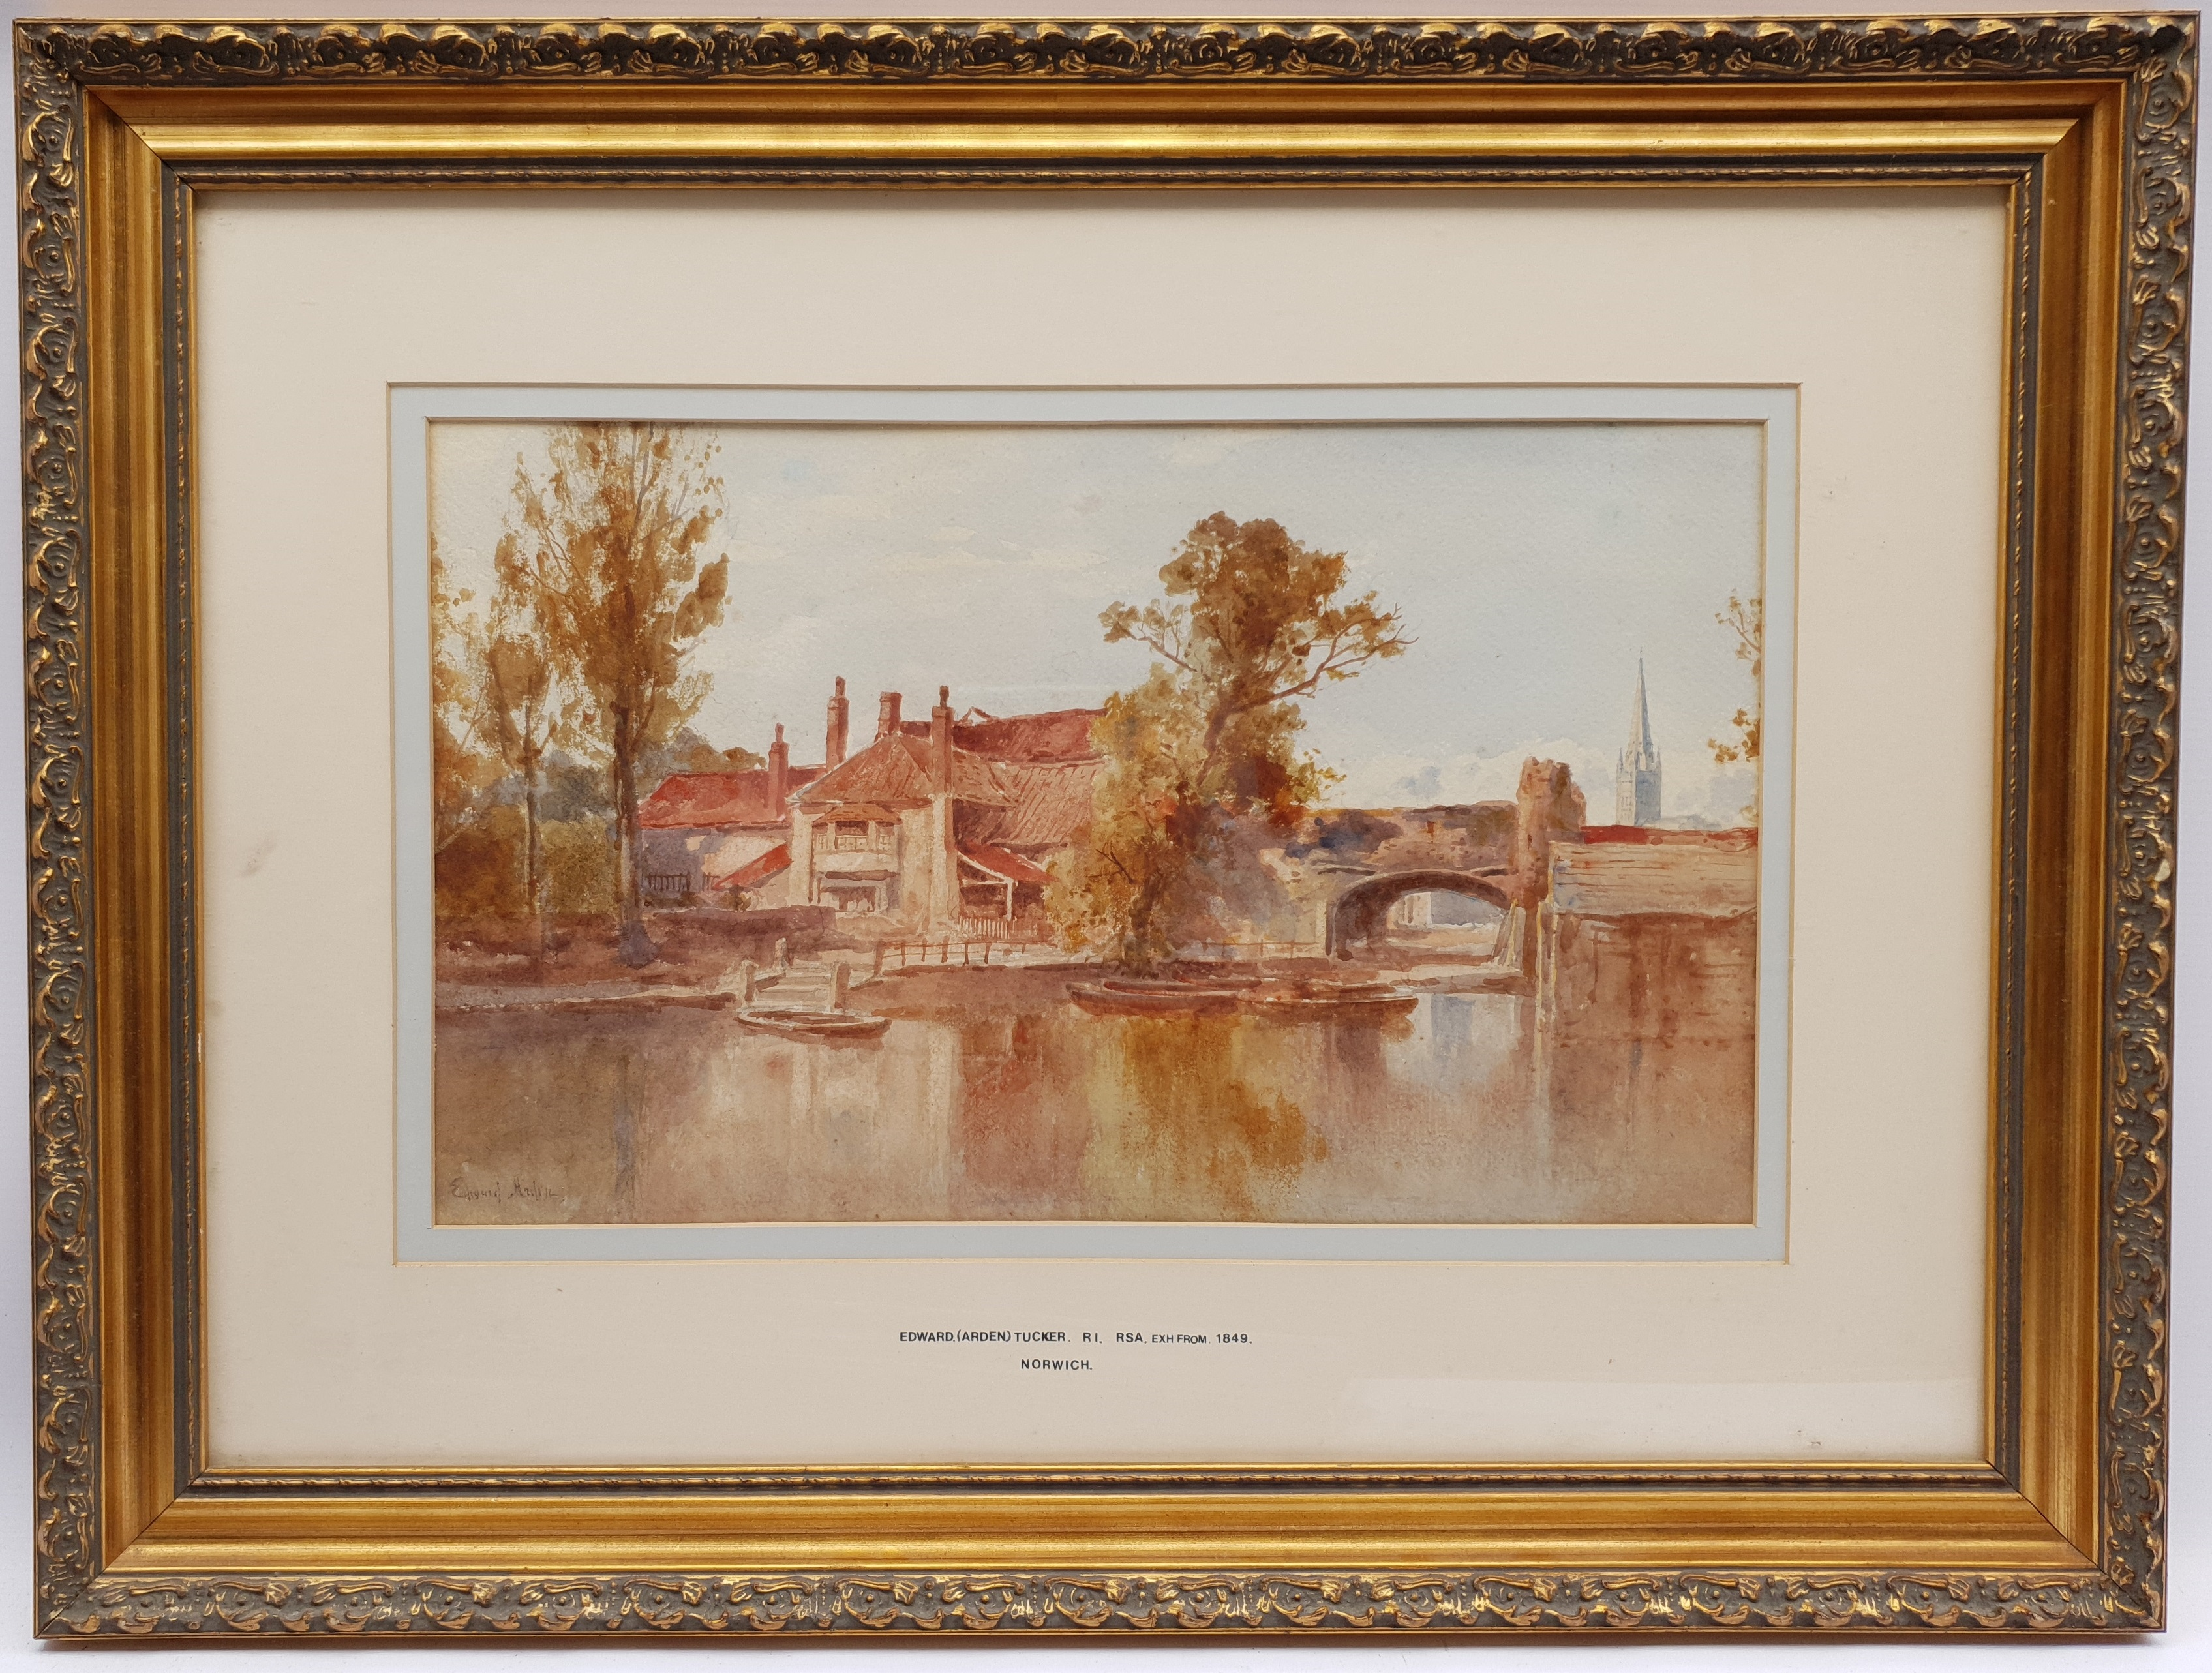 Edward Arden Tucker (British 1847-1910): 'Norwich', watercolour signed 26cm x 42cm; together with a - Image 2 of 4